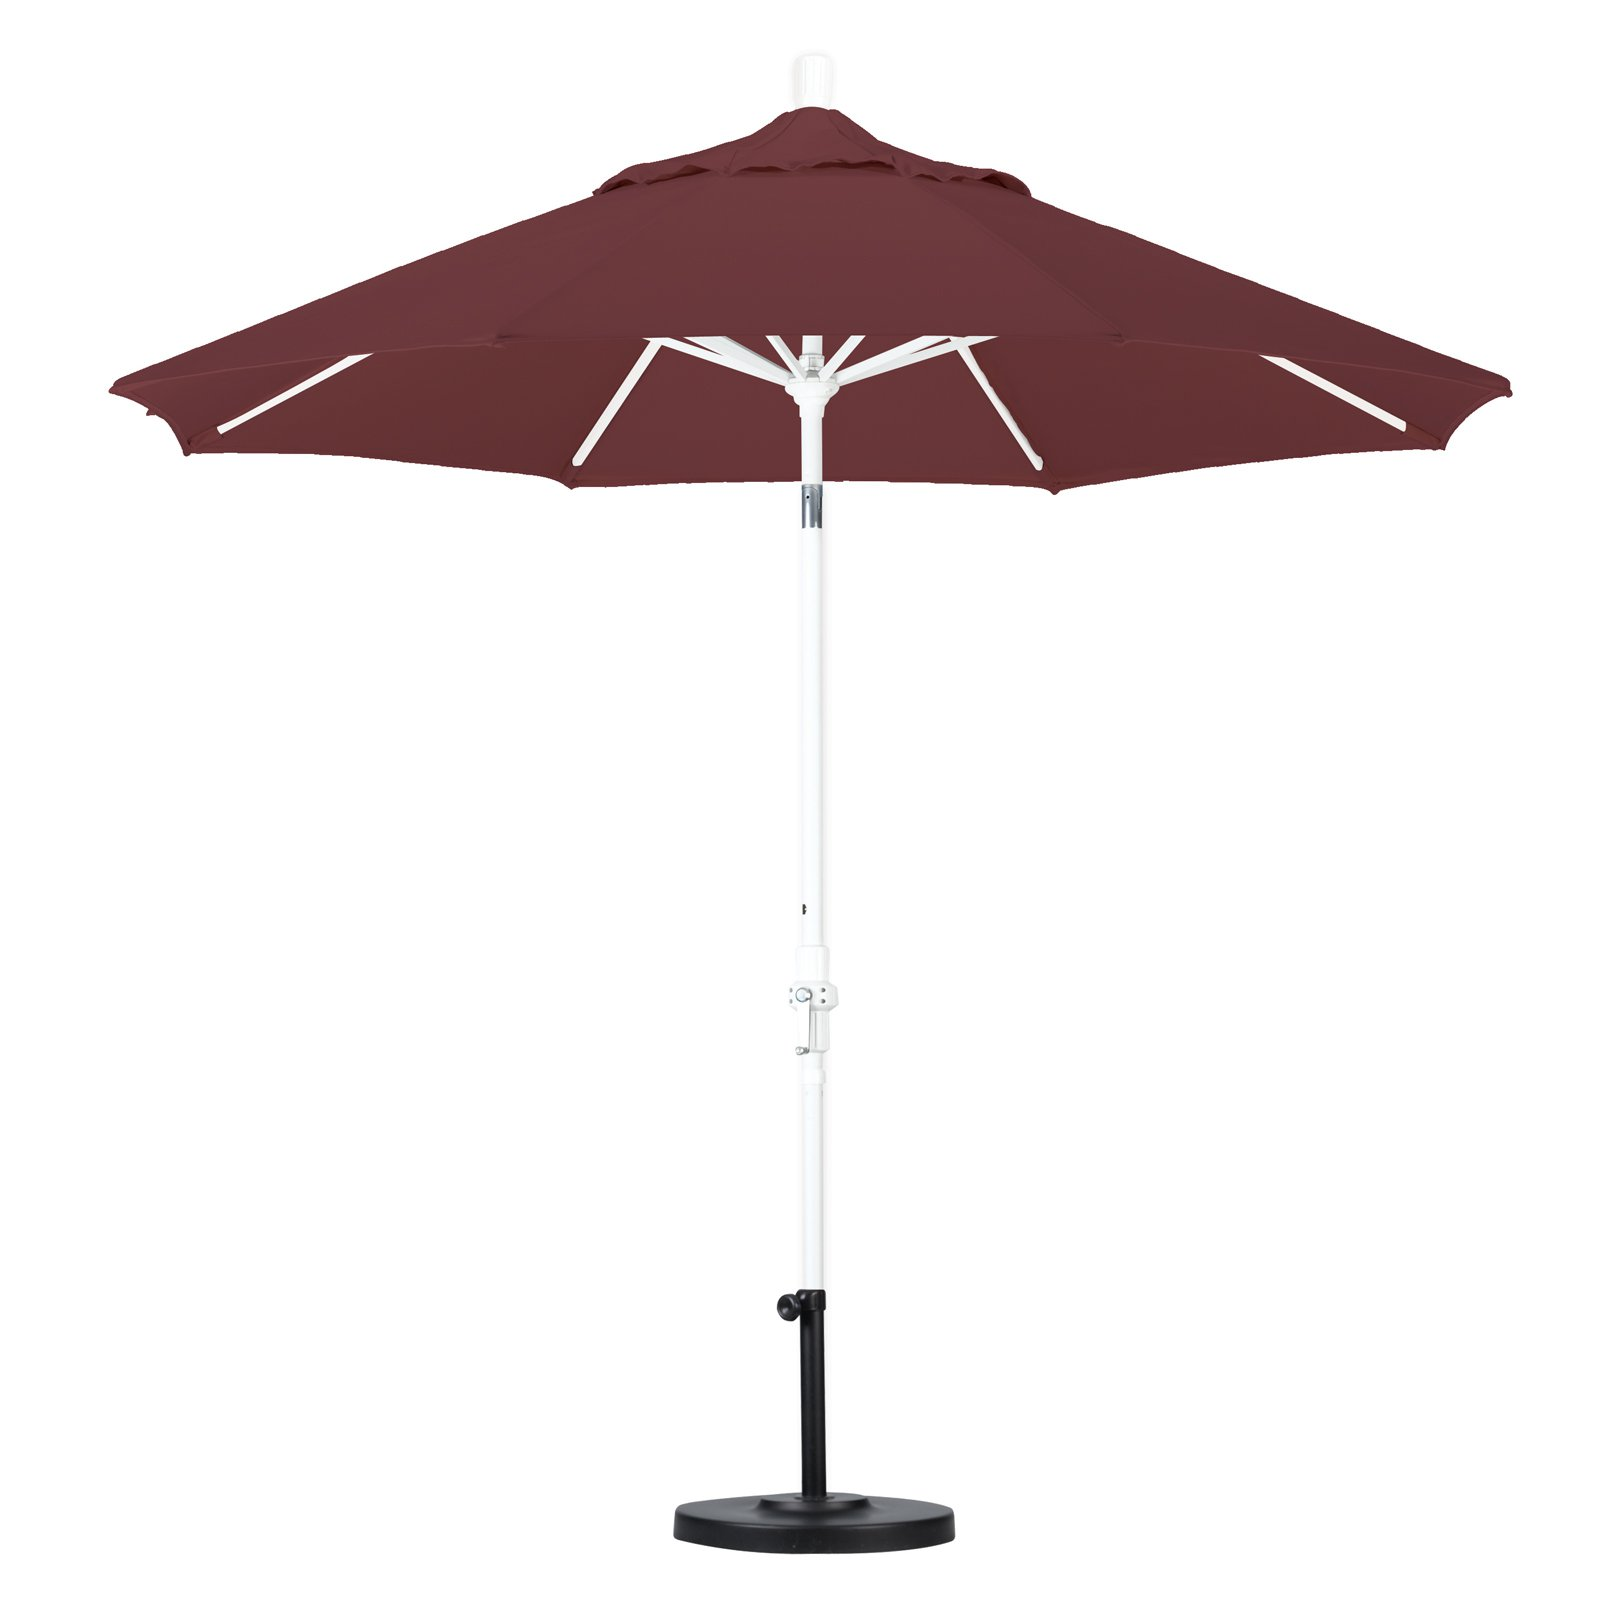 California Umbrella 9' Market Patio Umbrella in Burgandy